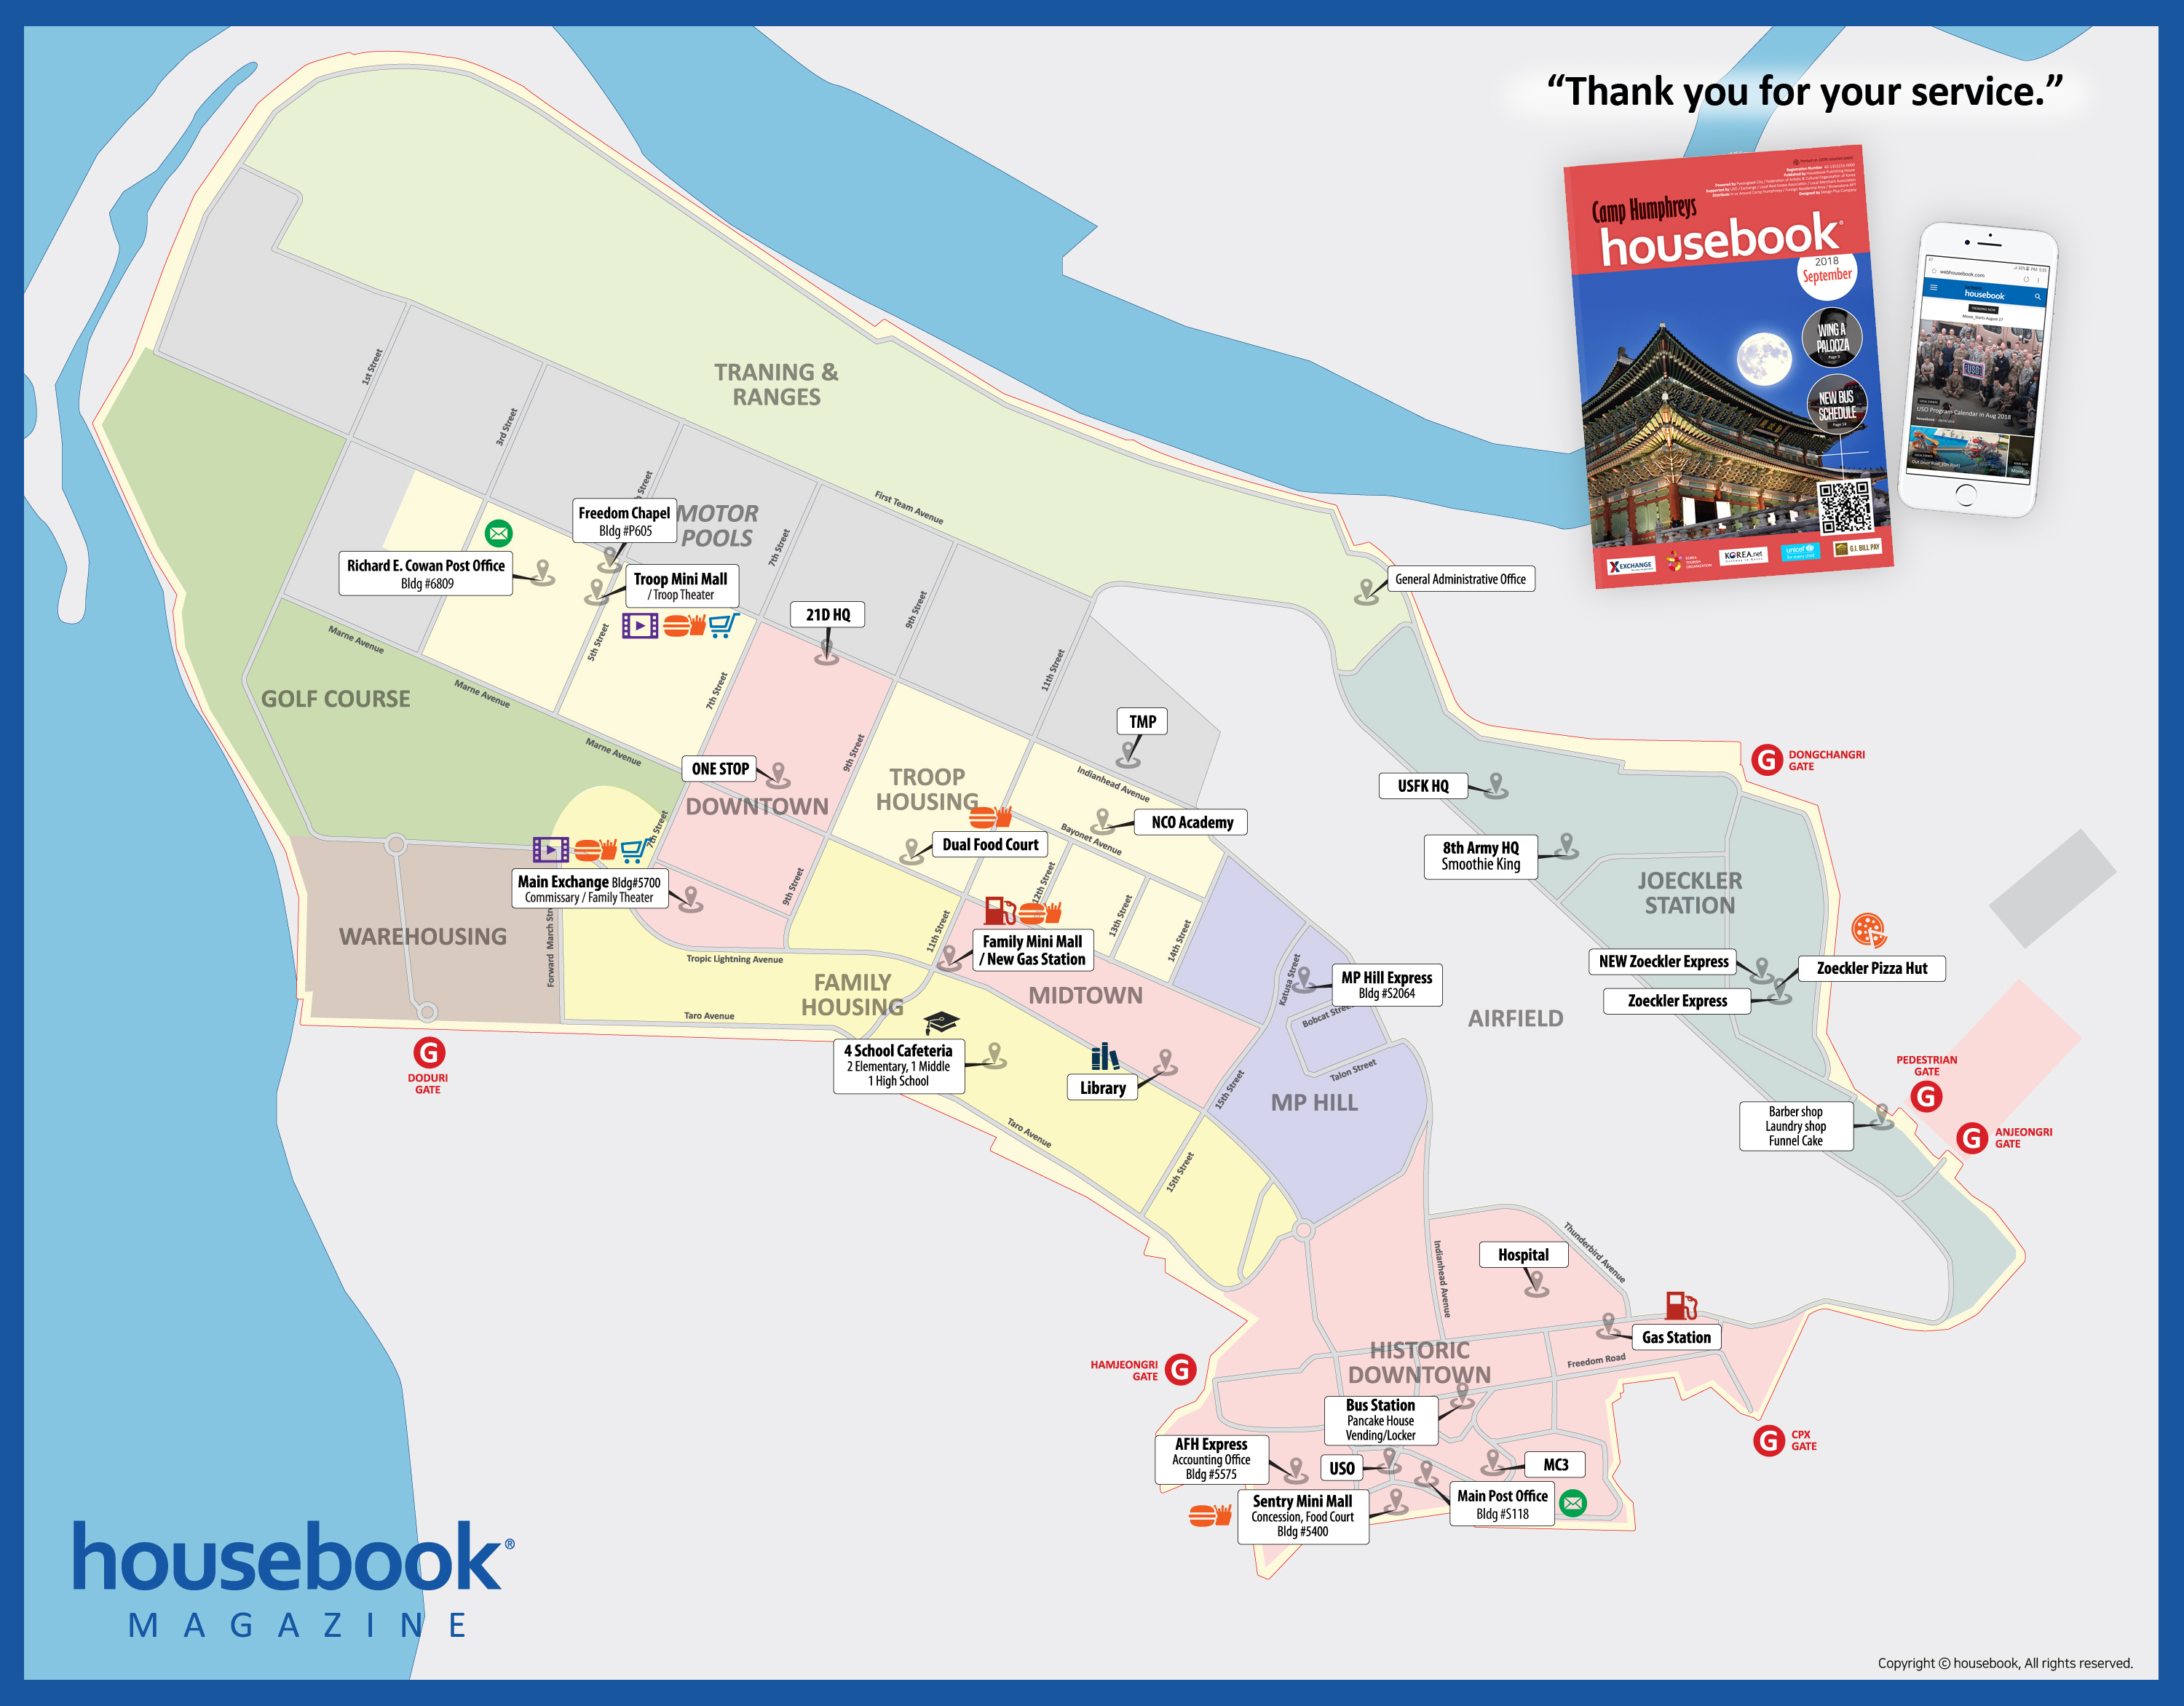 Maps & Gate Hours | housebook Camp Humphreys Map on camp mctureous map, camp carroll korea, camp hansen map, camp atterbury map, camp jackson korea, camp casey map, camp lejeune map, camp red cloud, camp butler map, camp shelby map, camp long map, camp kinser map, camp robinson military base map, camp sevier map, camp claiborne map, camp george map, camp hovey, camp washington map, camp elliott san diego map, camp foster map,